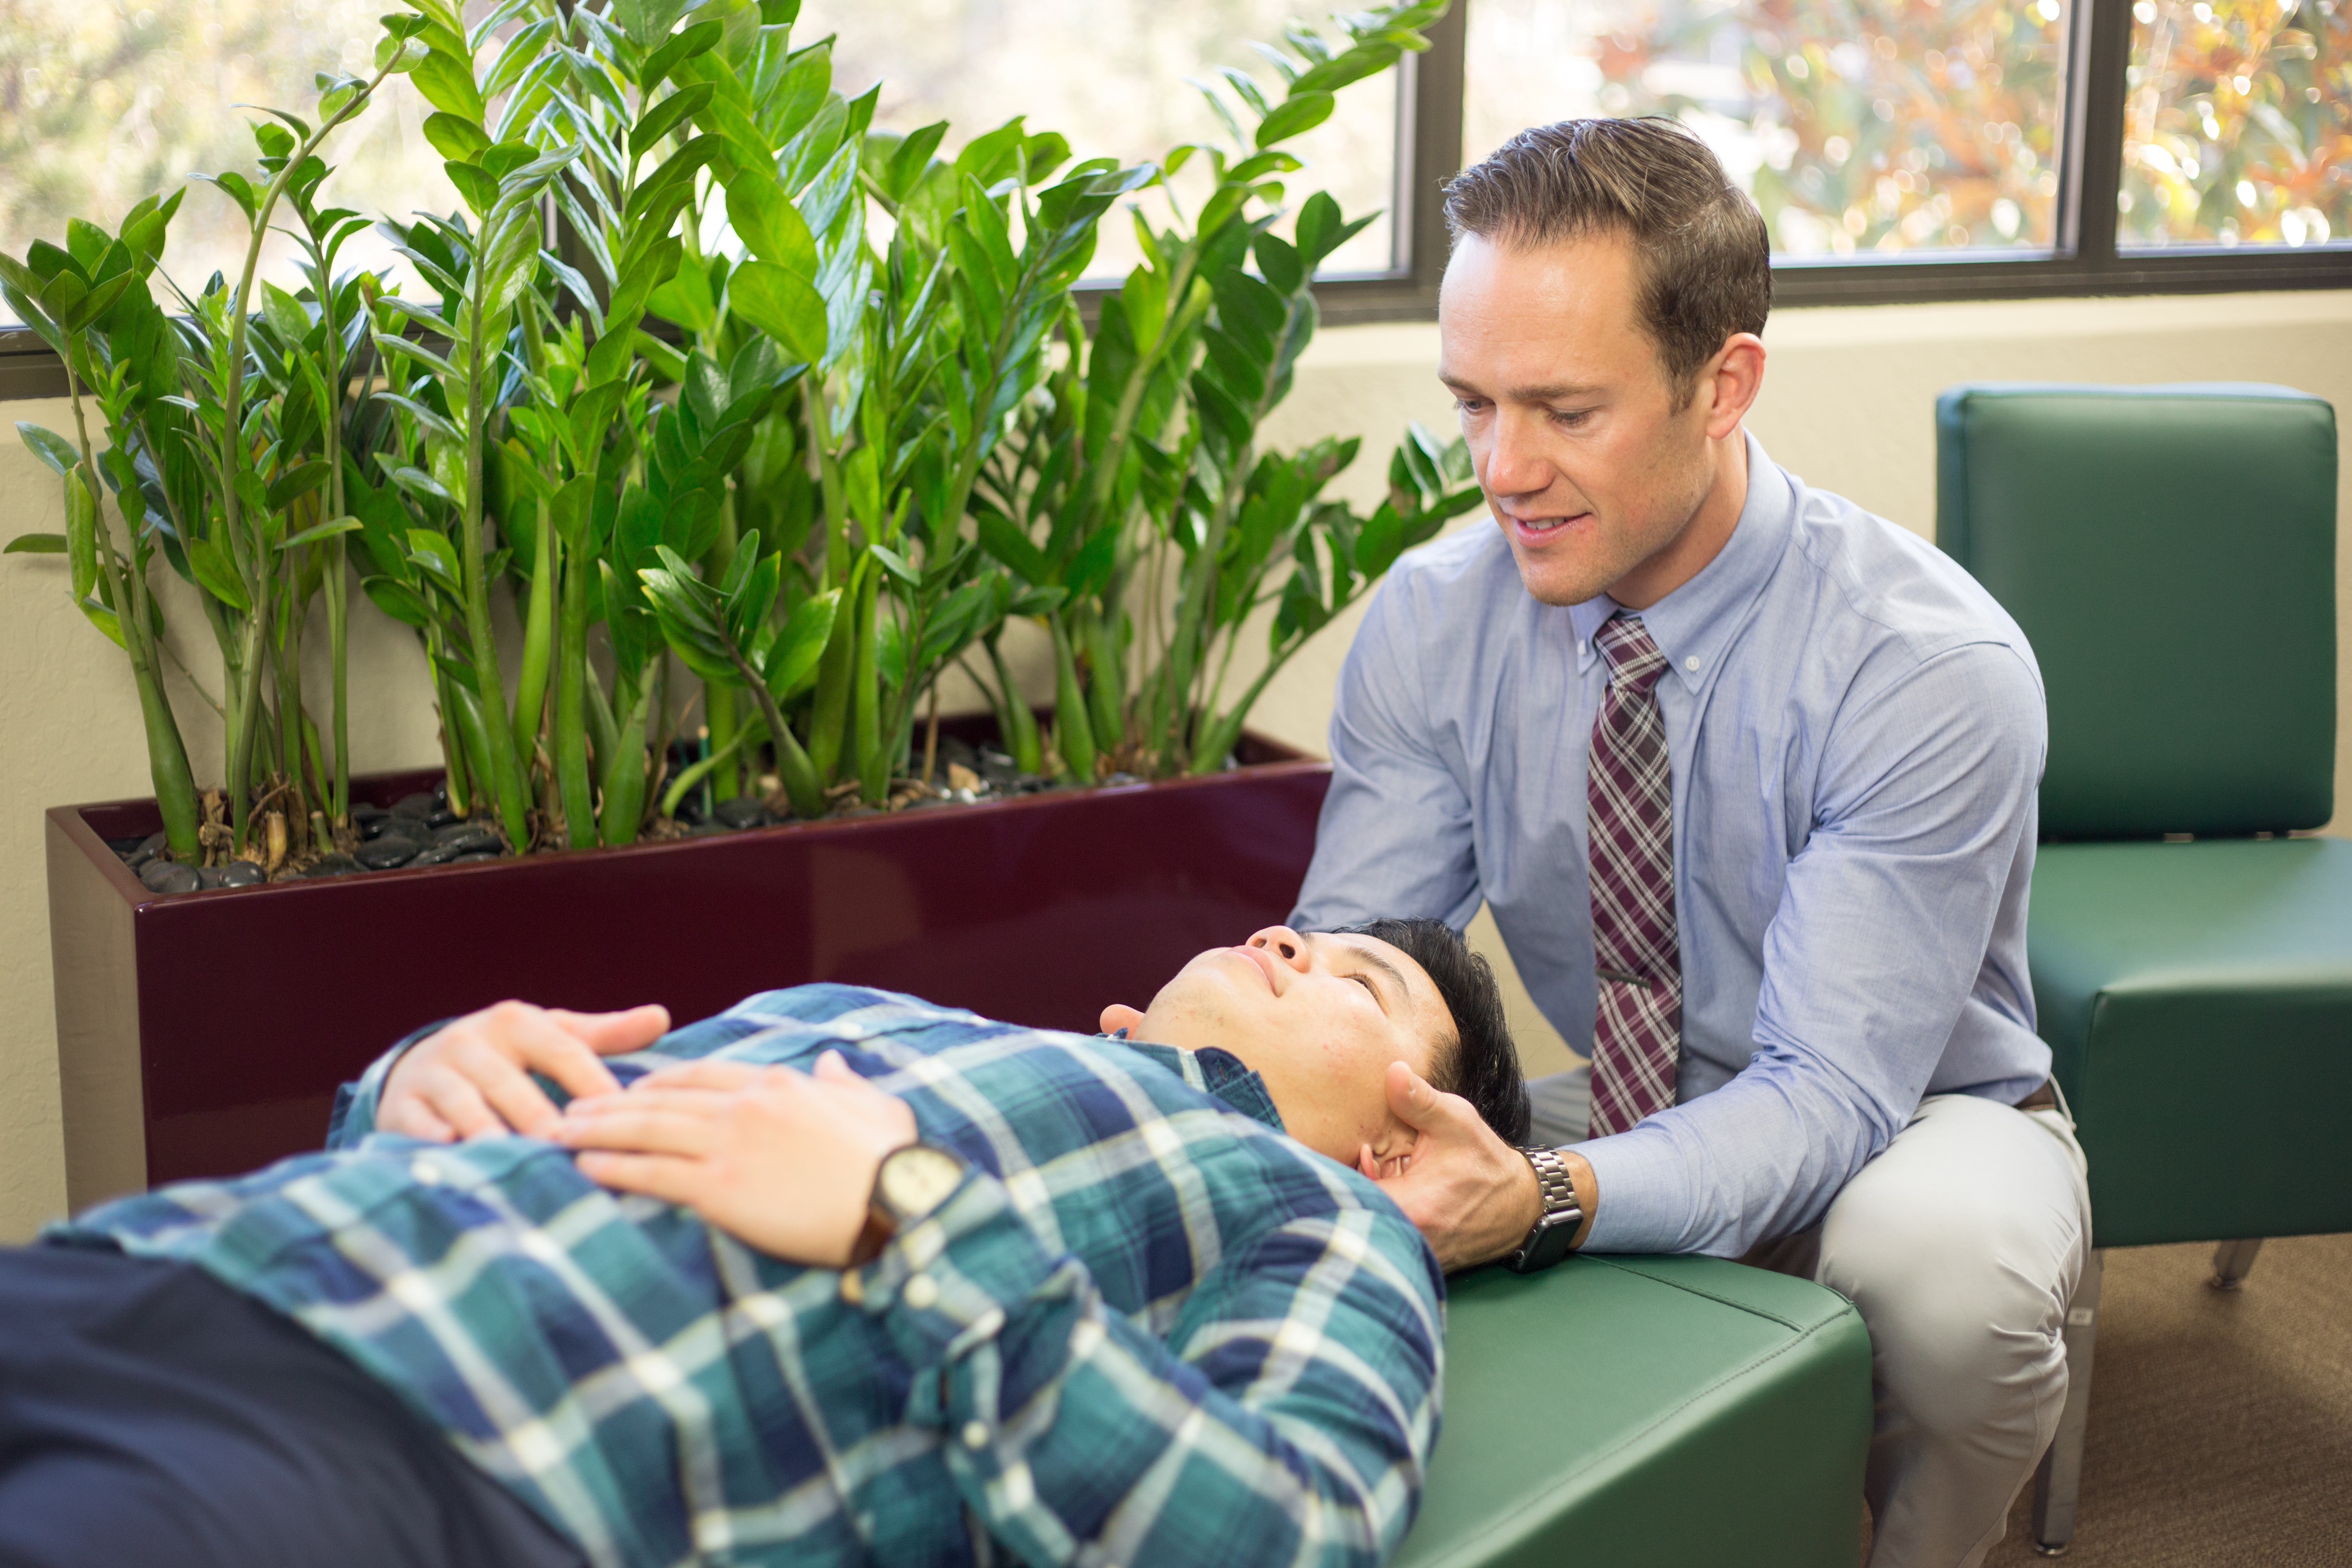 chiropractic care a great solution to the opioid epidemic